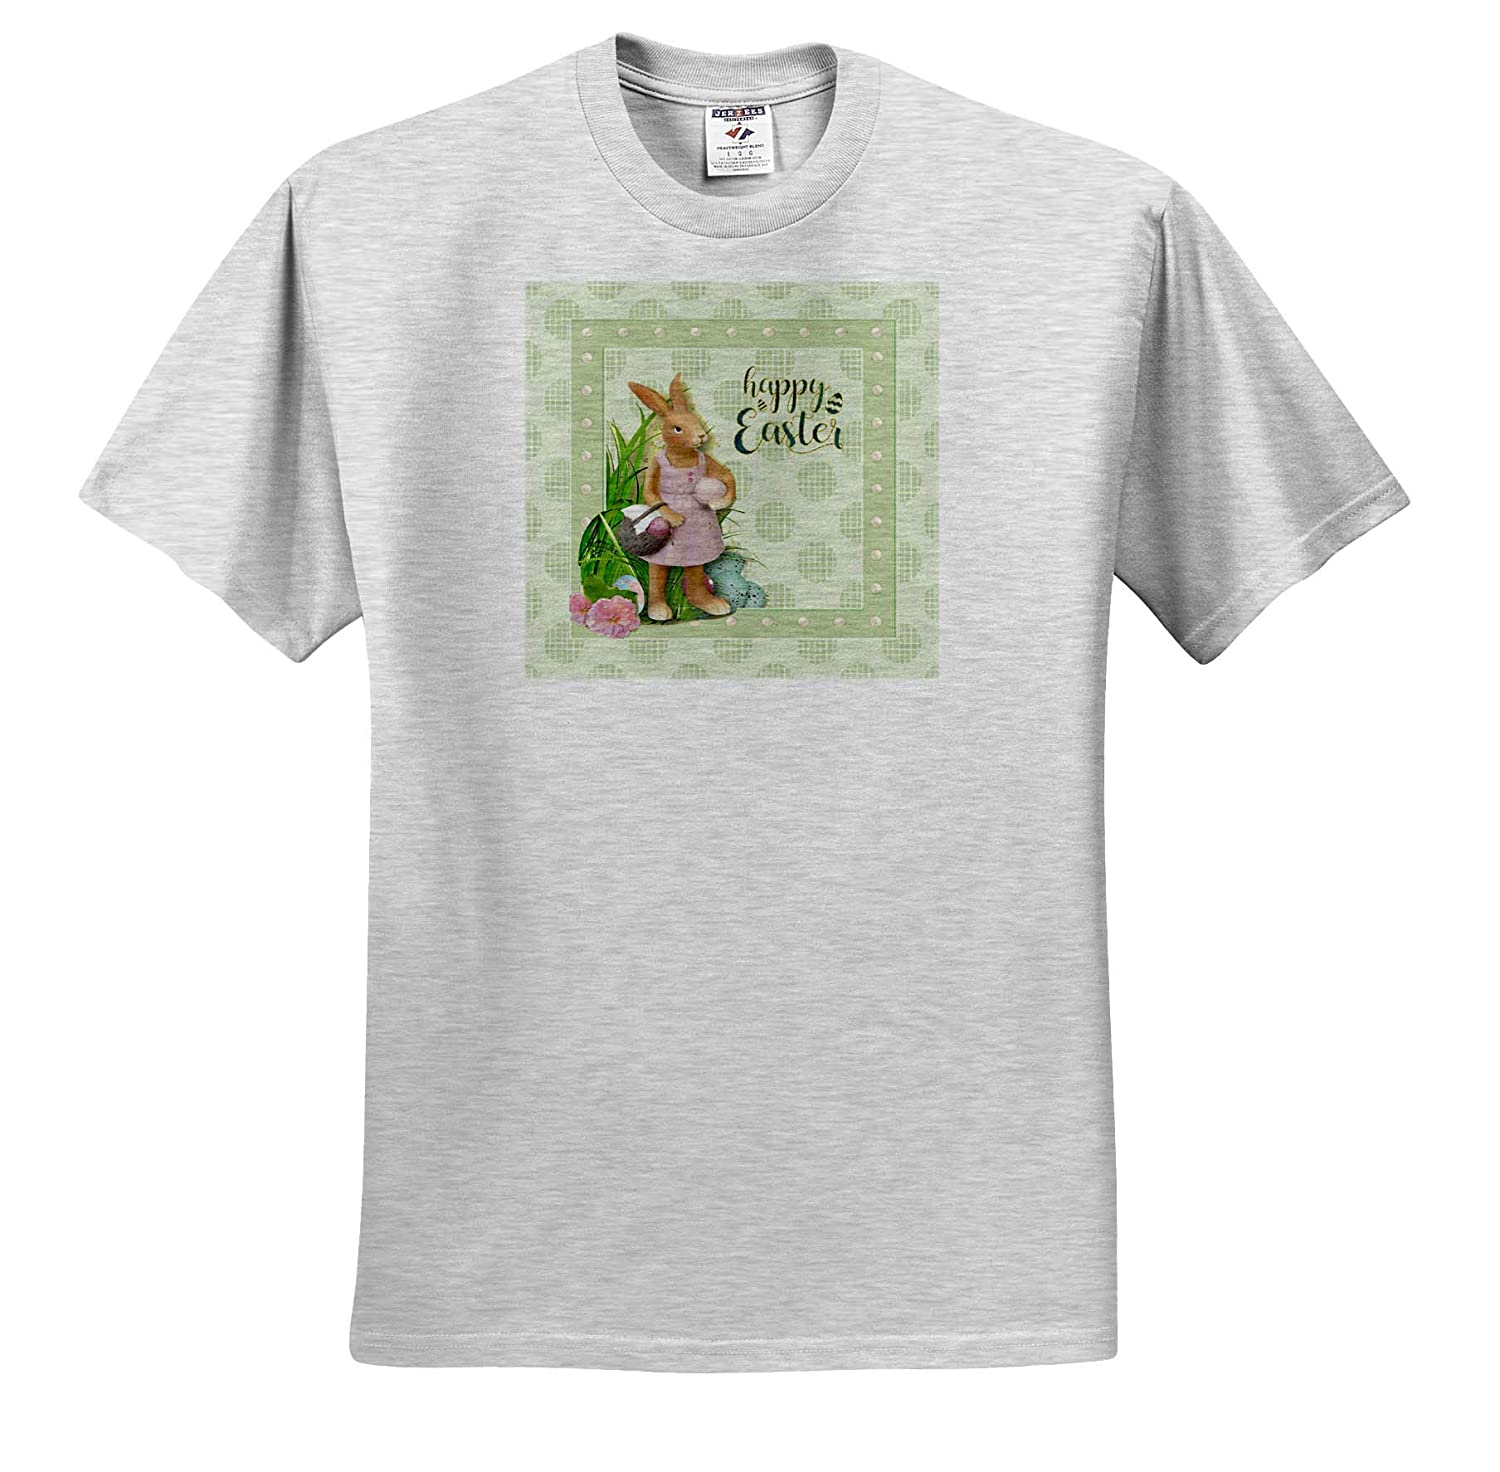 T-Shirts 3dRose Beverly Turner Easter Design and Photography Girl Rabbit in Pink Dress Basket of Eggs Happy Easter